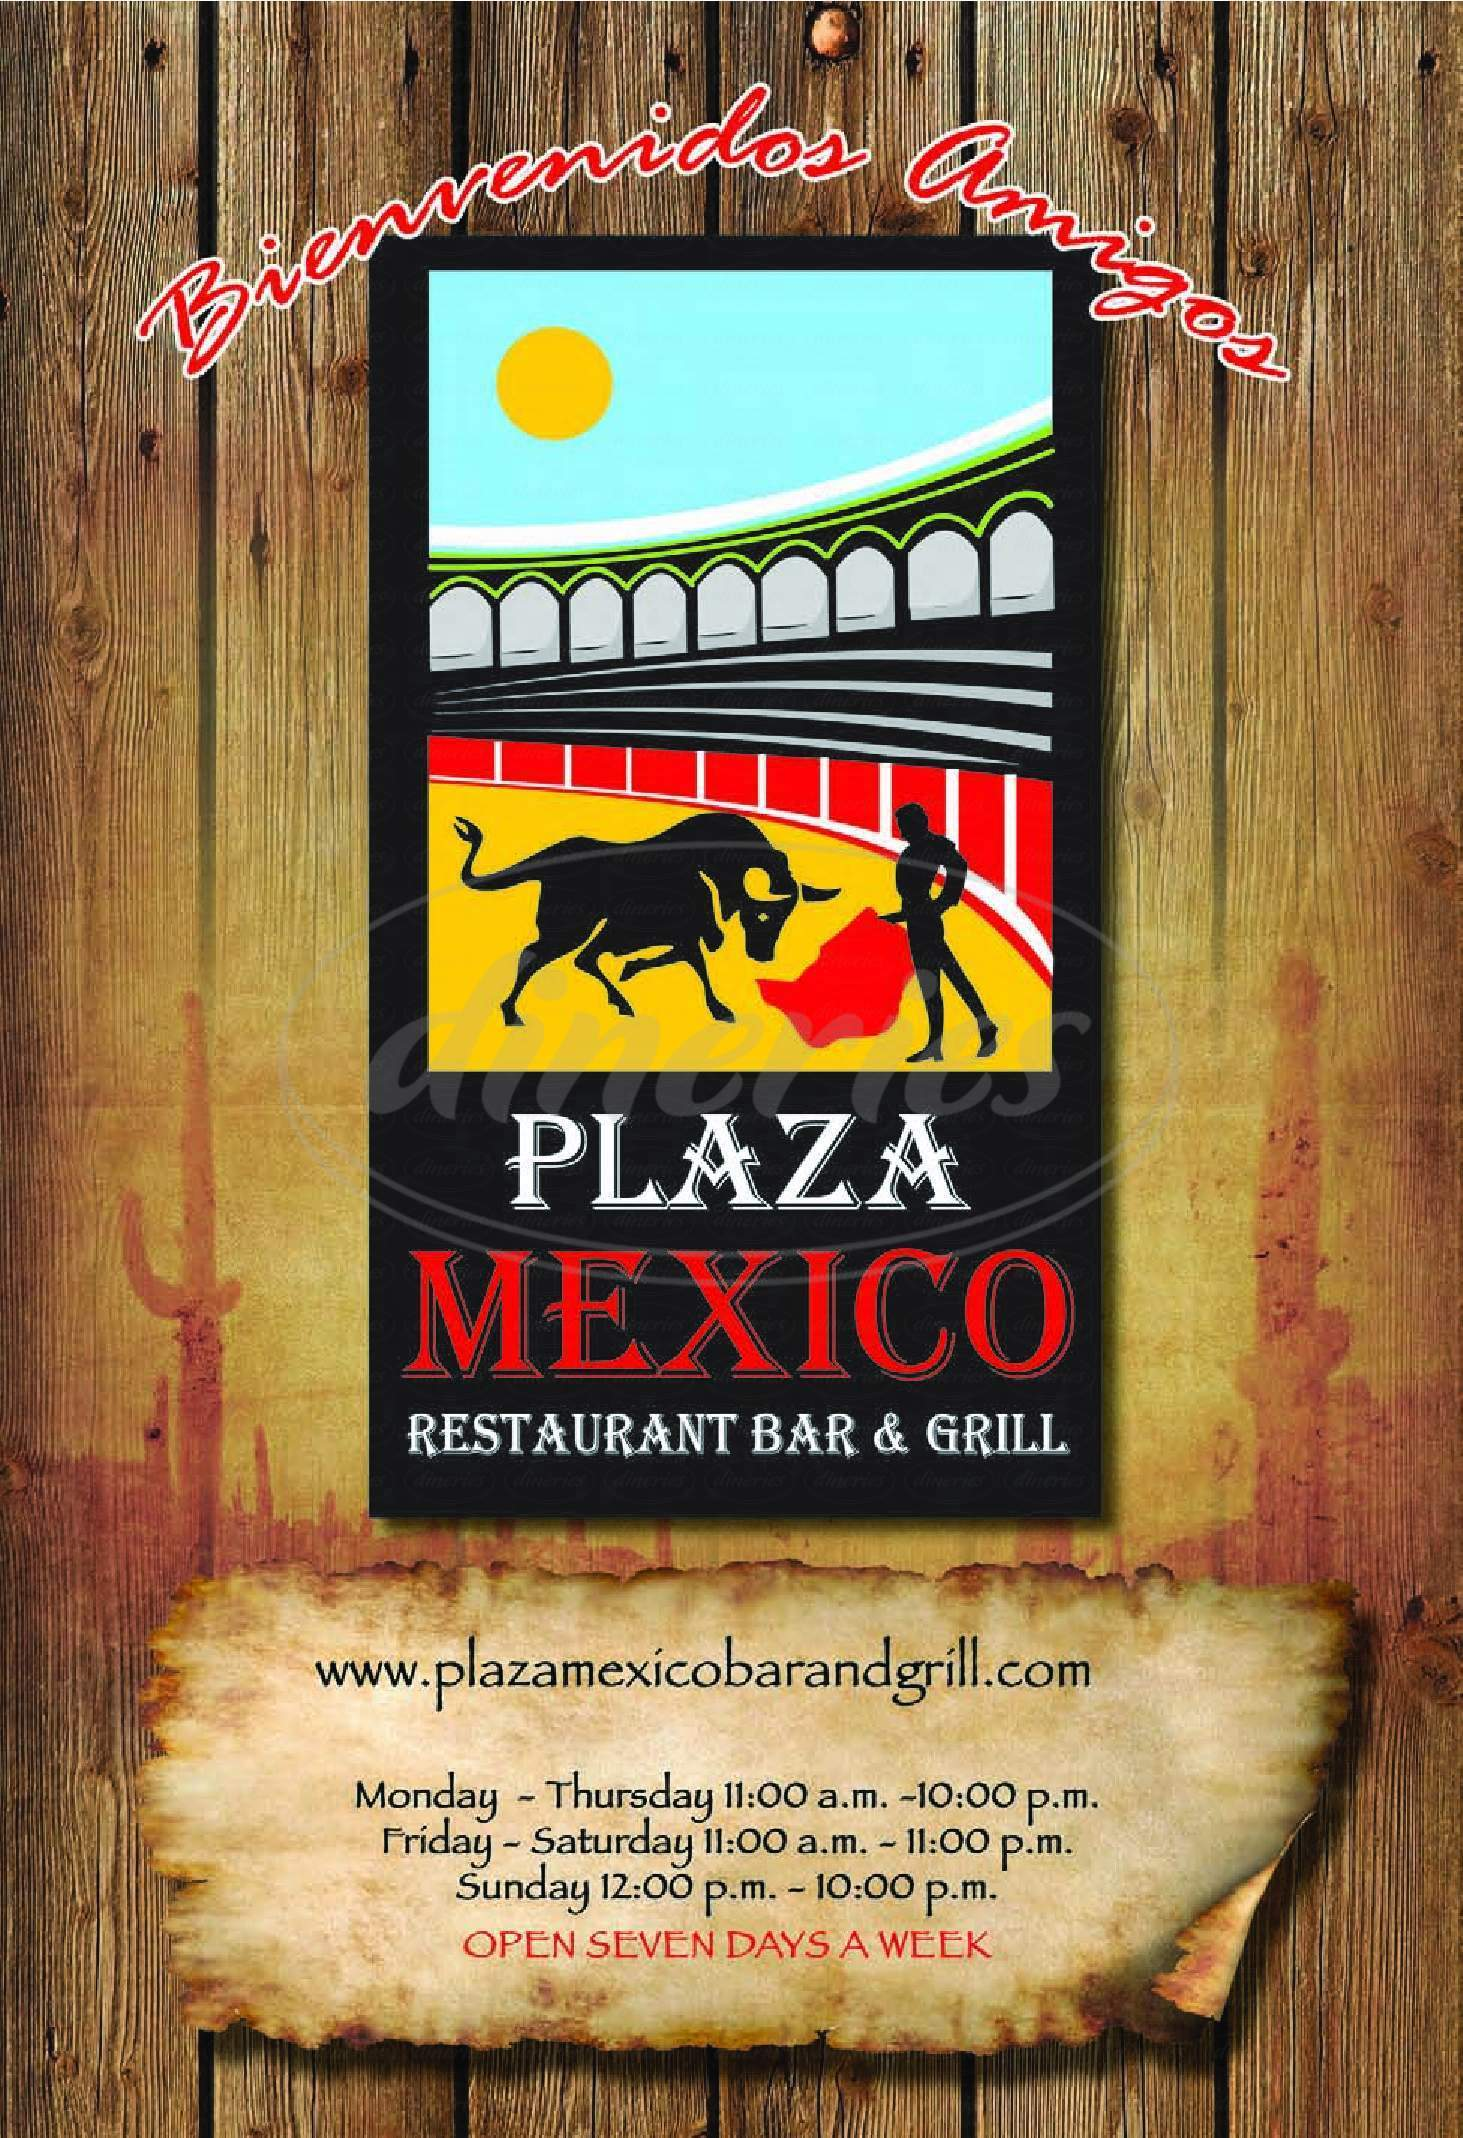 menu for Plaza Mexico